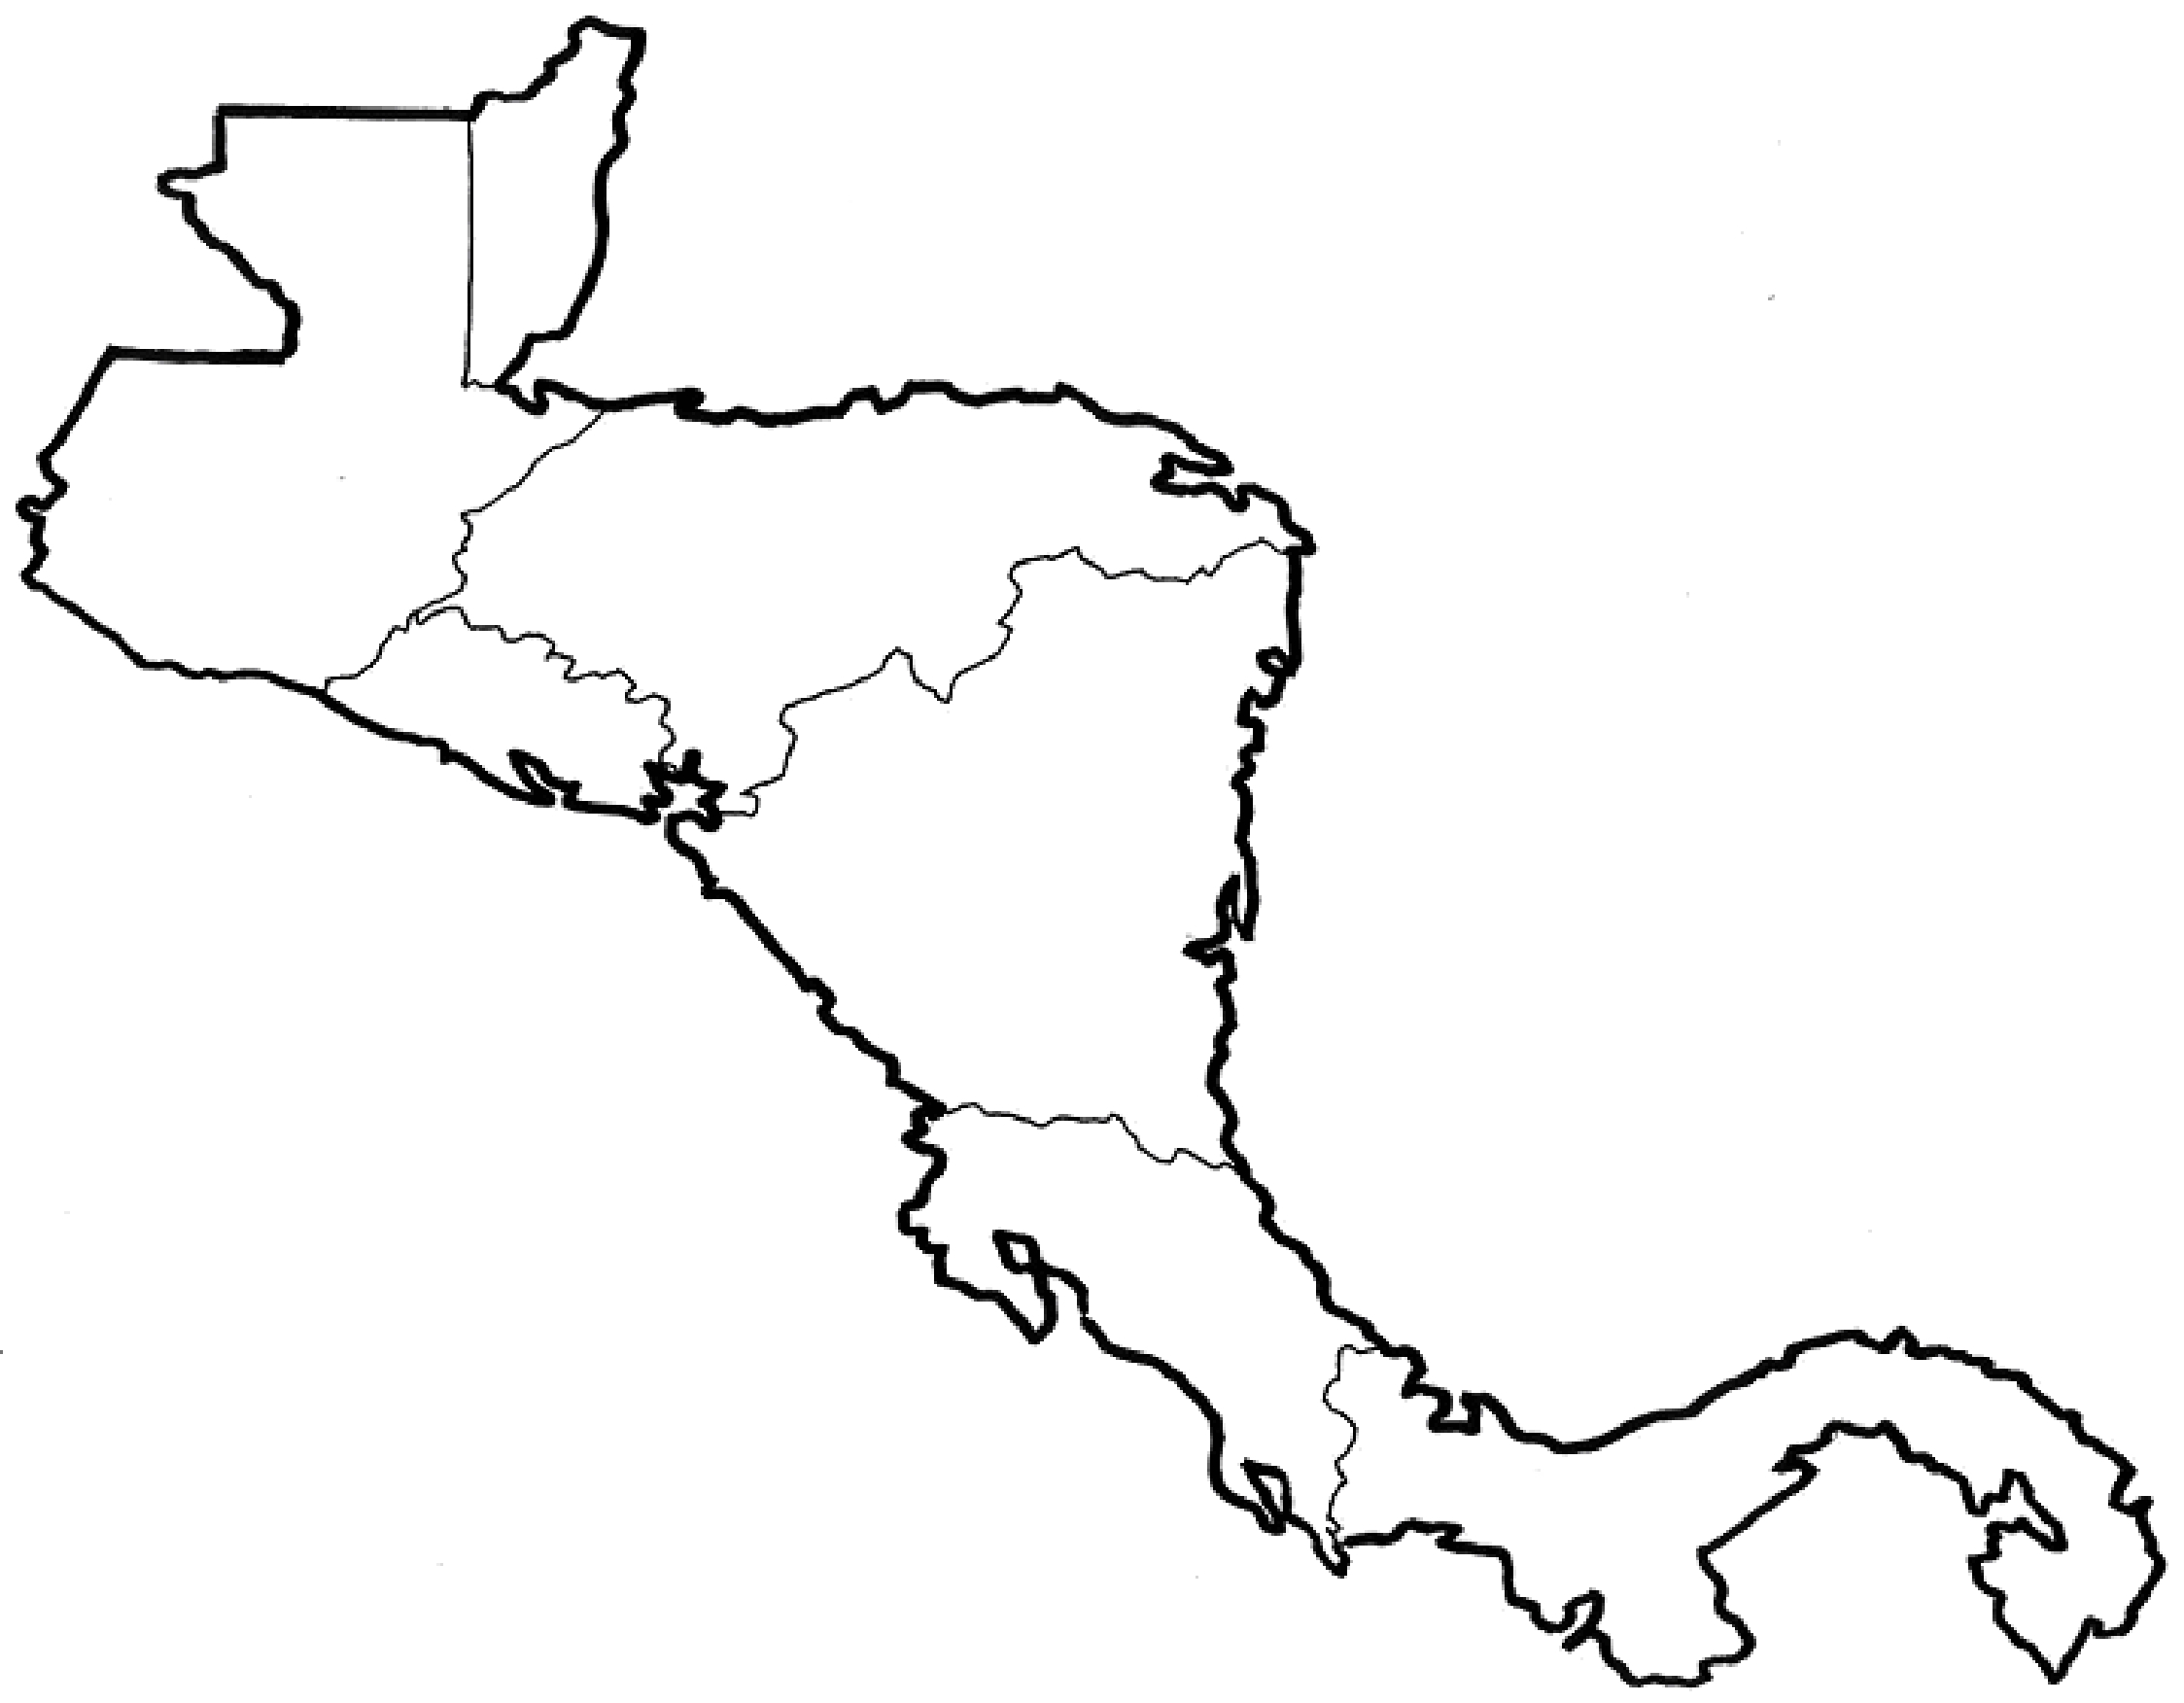 Blank United States Map Quiz Pdf My Blog The US States - Usa map states and capitals pdf